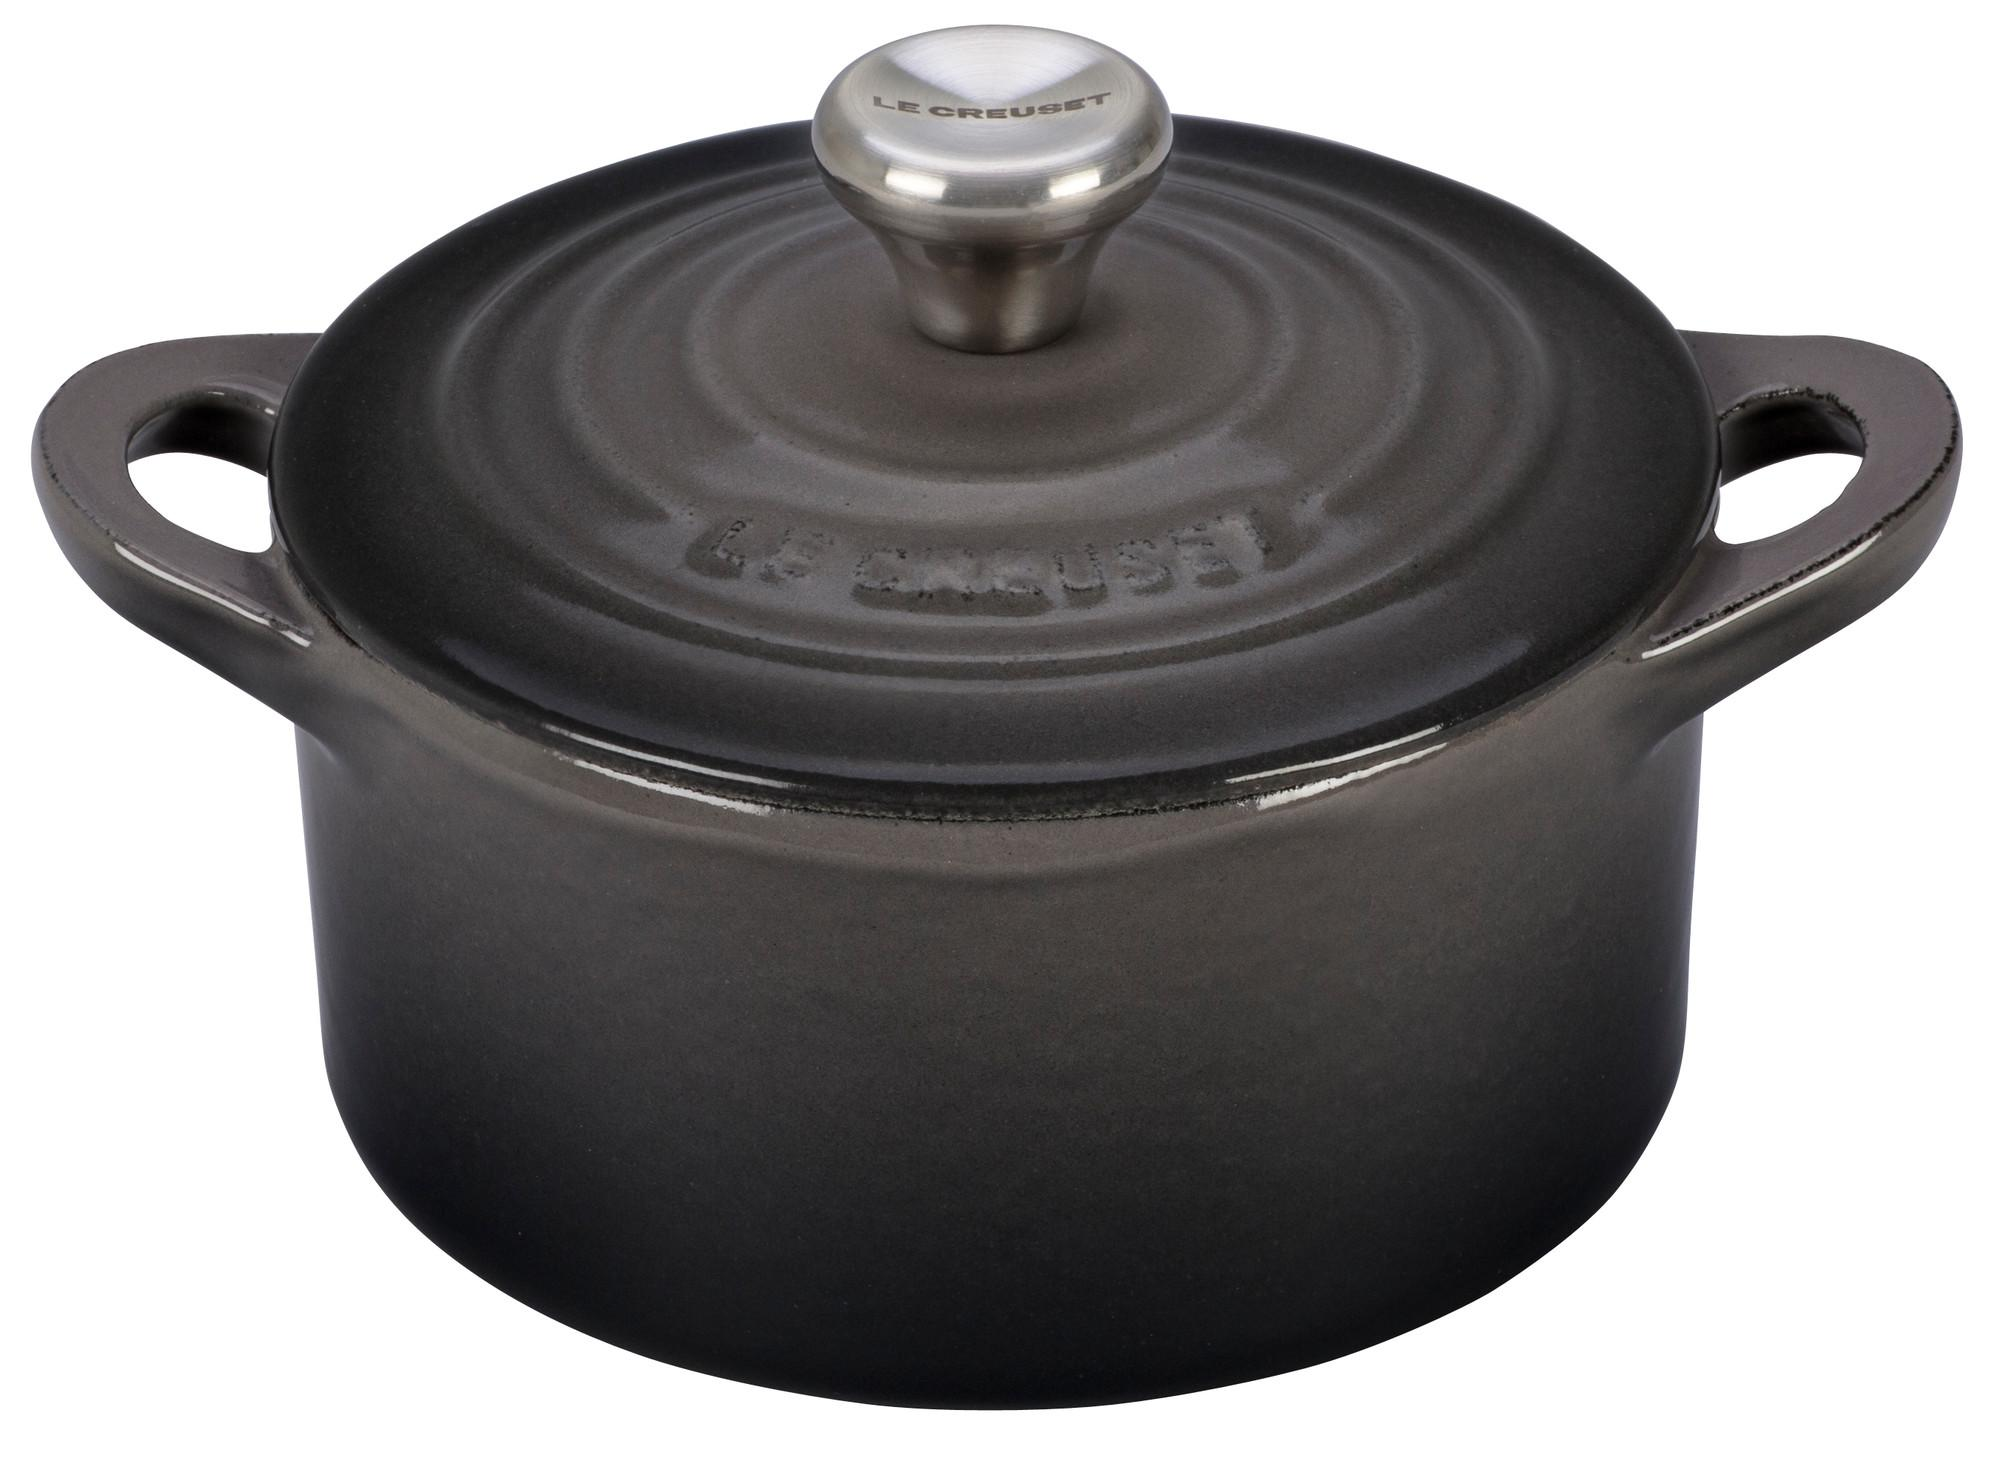 le creuset enameled cast iron mini cocotte 1 3 quart matte black kitchen dining. Black Bedroom Furniture Sets. Home Design Ideas